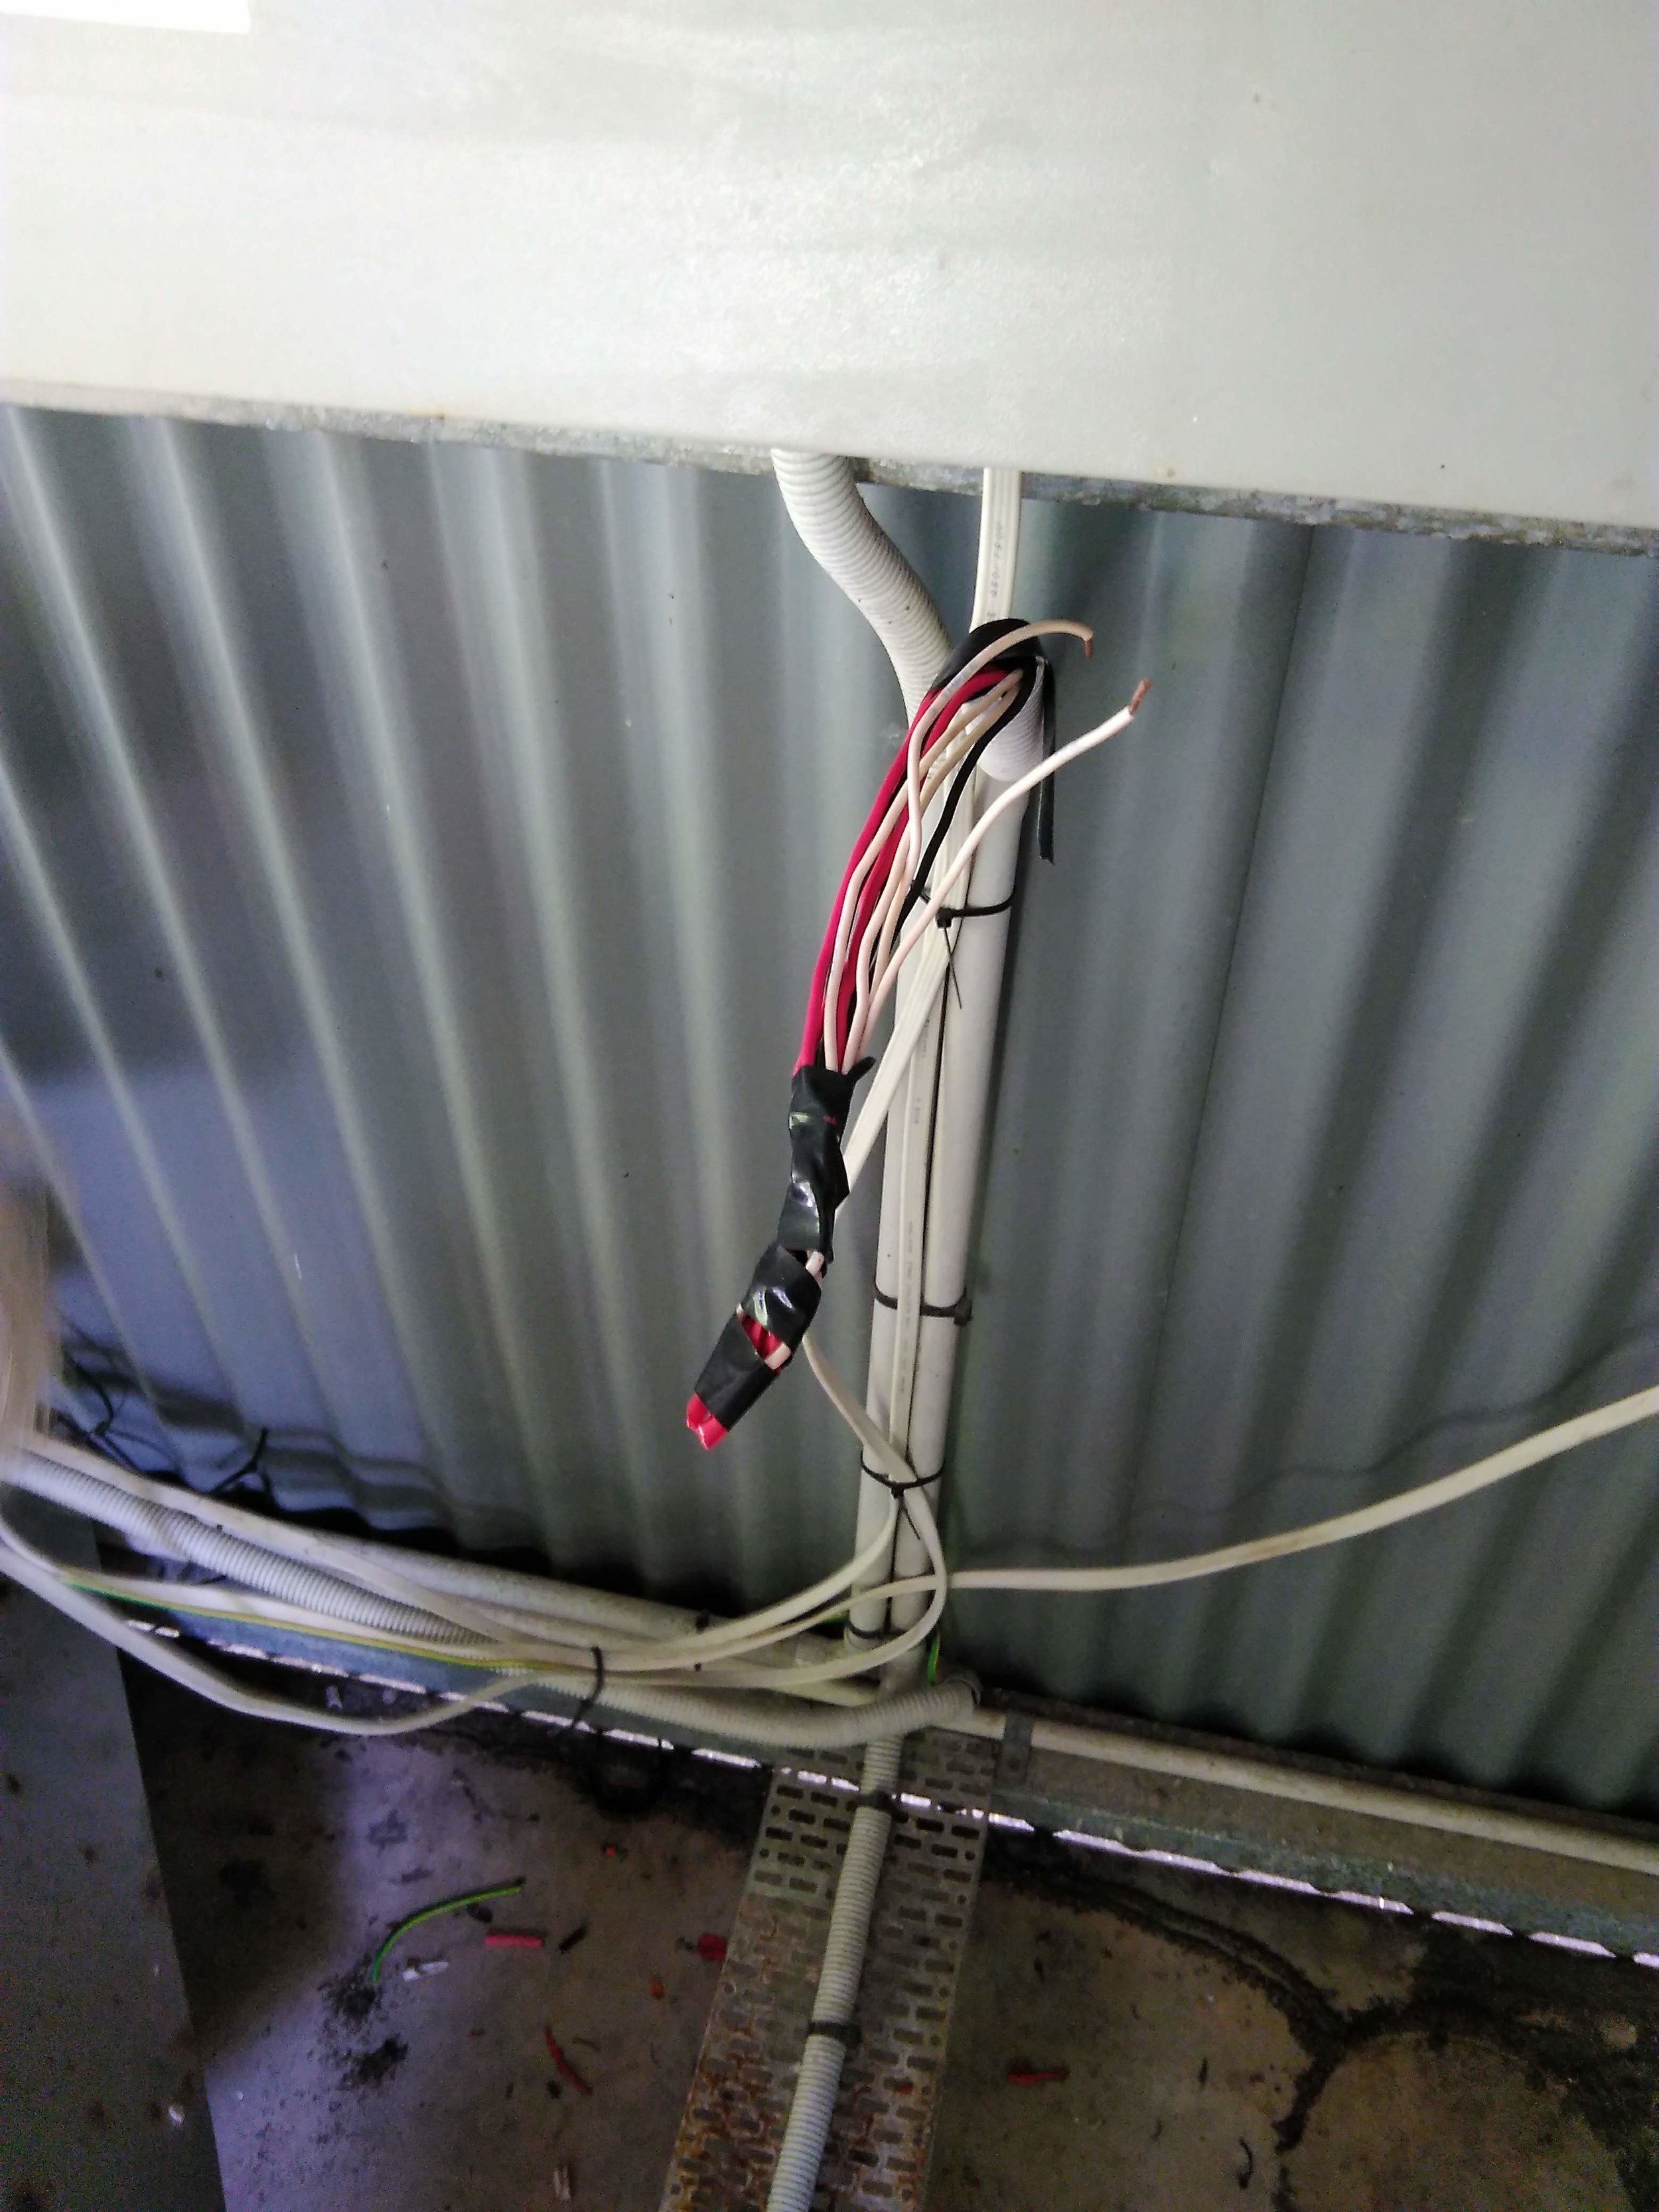 Existing - Temp wiring